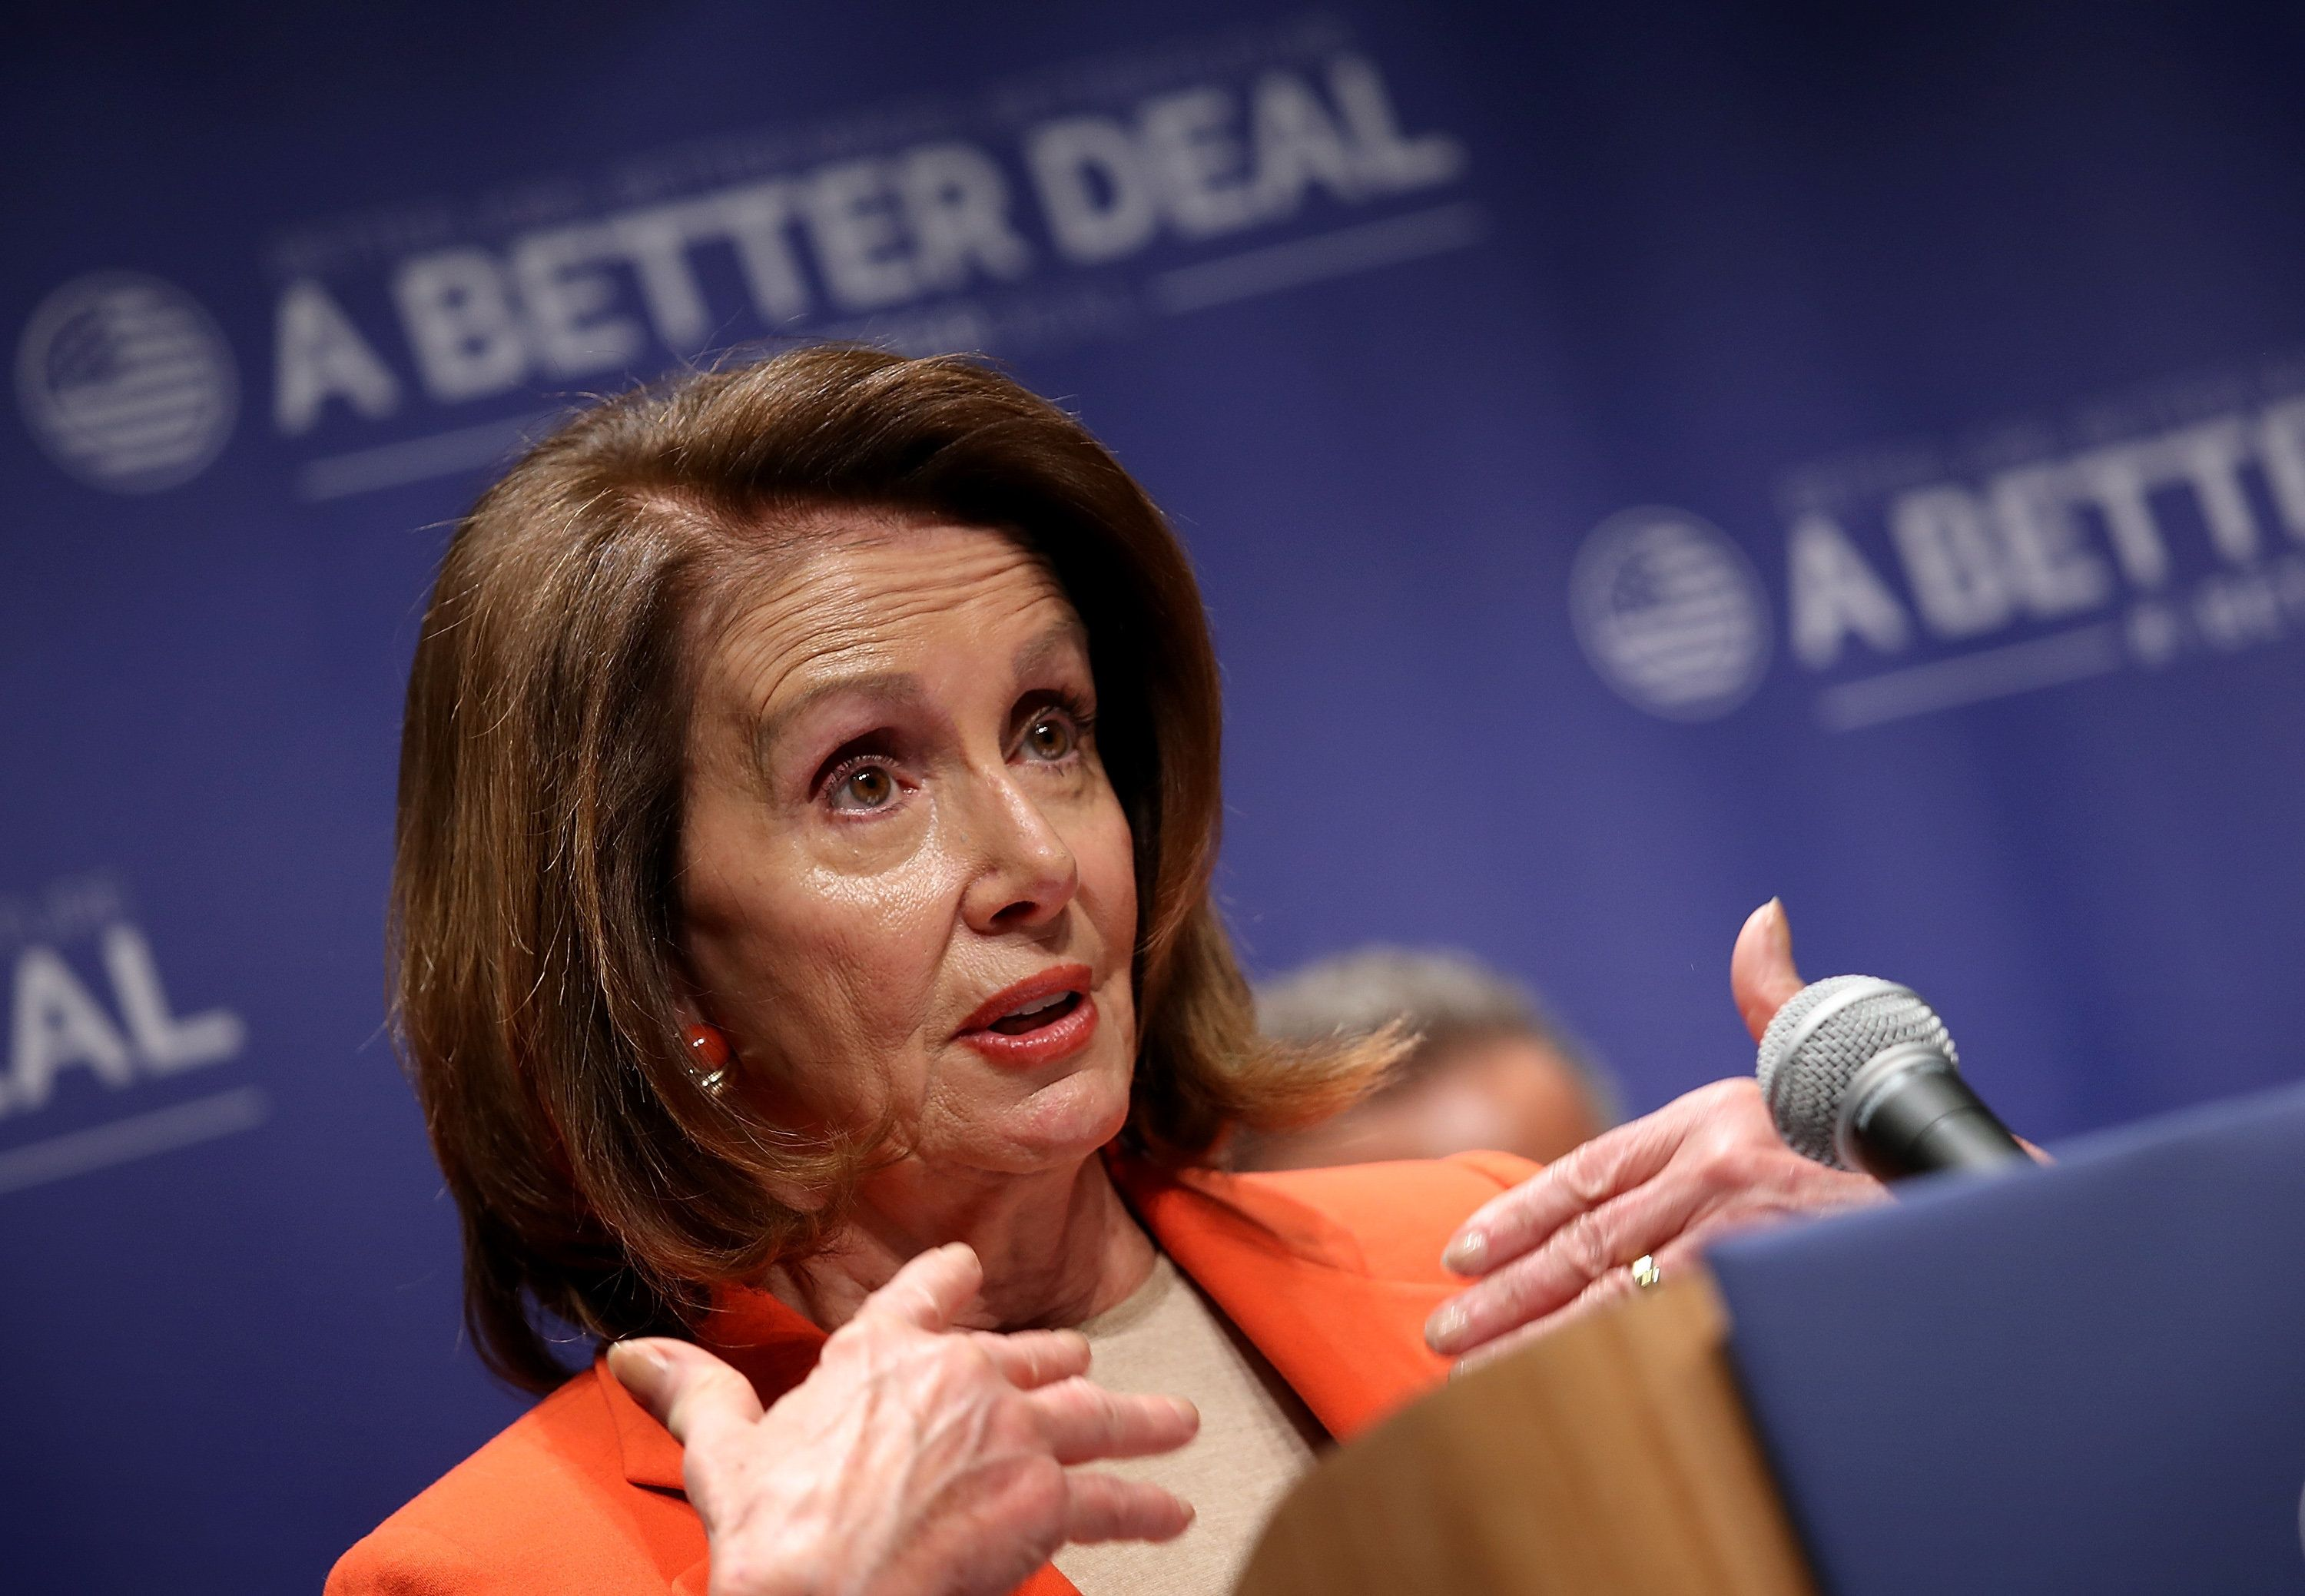 ALEXANDRIA, VA - APRIL 27:  House Minority Leader Nancy Pelosi (D-CA) speaks during an event at Northern Virginia Community College April 27, 2018 in Alexandria, Virginia. Pelosi and Democratic leaders unveiled the newest plank of their economic agenda, 'A Better Deal: Tools to Succeed in the 21st Century' during the event.  (Photo by Win McNamee/Getty Images)